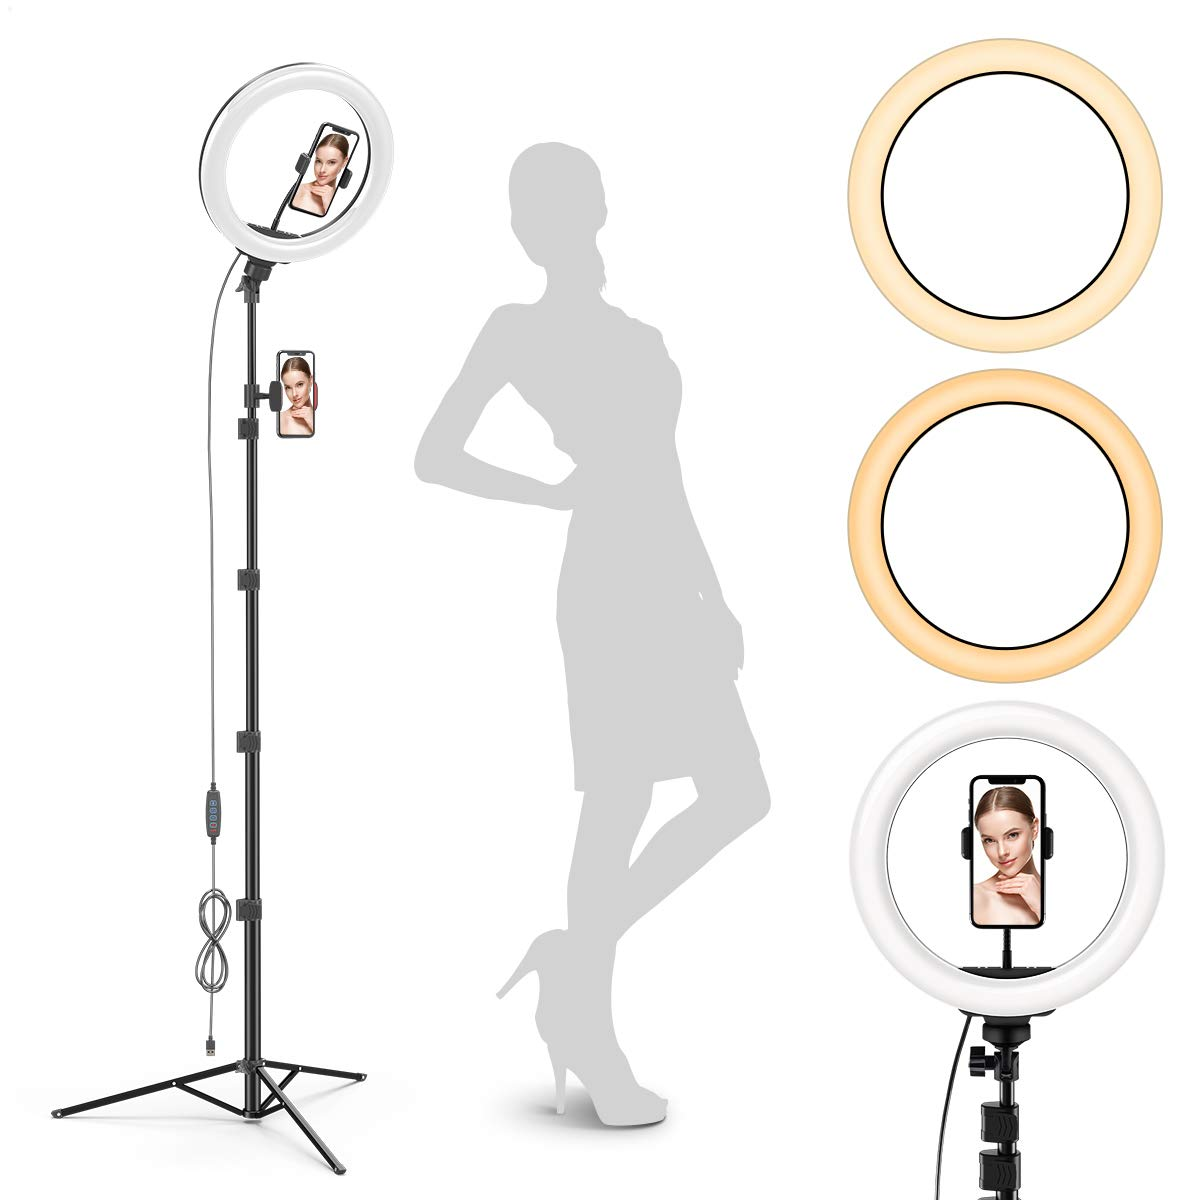 """Radiance 10"""" Ring Light with Tripod Stand (74"""" Tall) - Dual Phone Holders, 3 Lighting, Selfie Circle LED Lights Ringlight for Video Recording, Conference, Makeup, iPhone, Laptop, Computer, Webcam"""